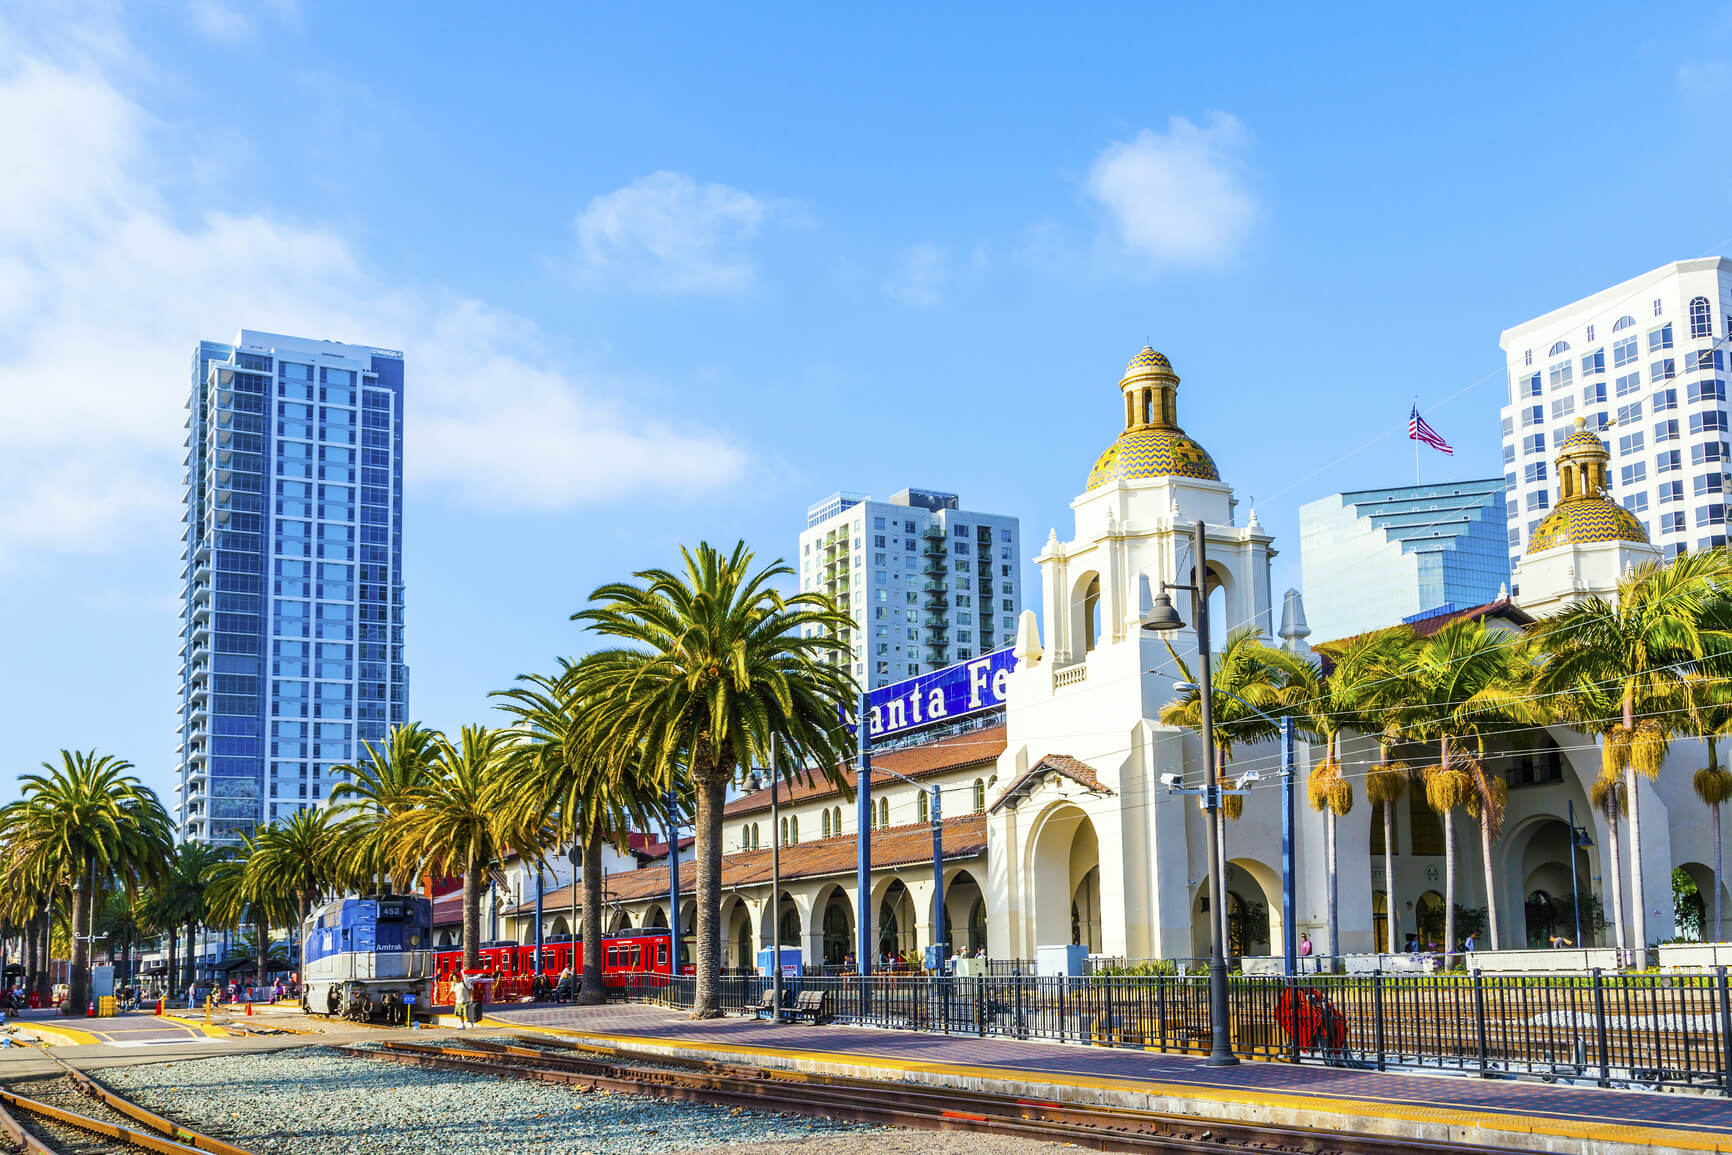 Fort Lauderdale to San Diego (& vice versa) for only $157 roundtrip (Nov-Mar dates)